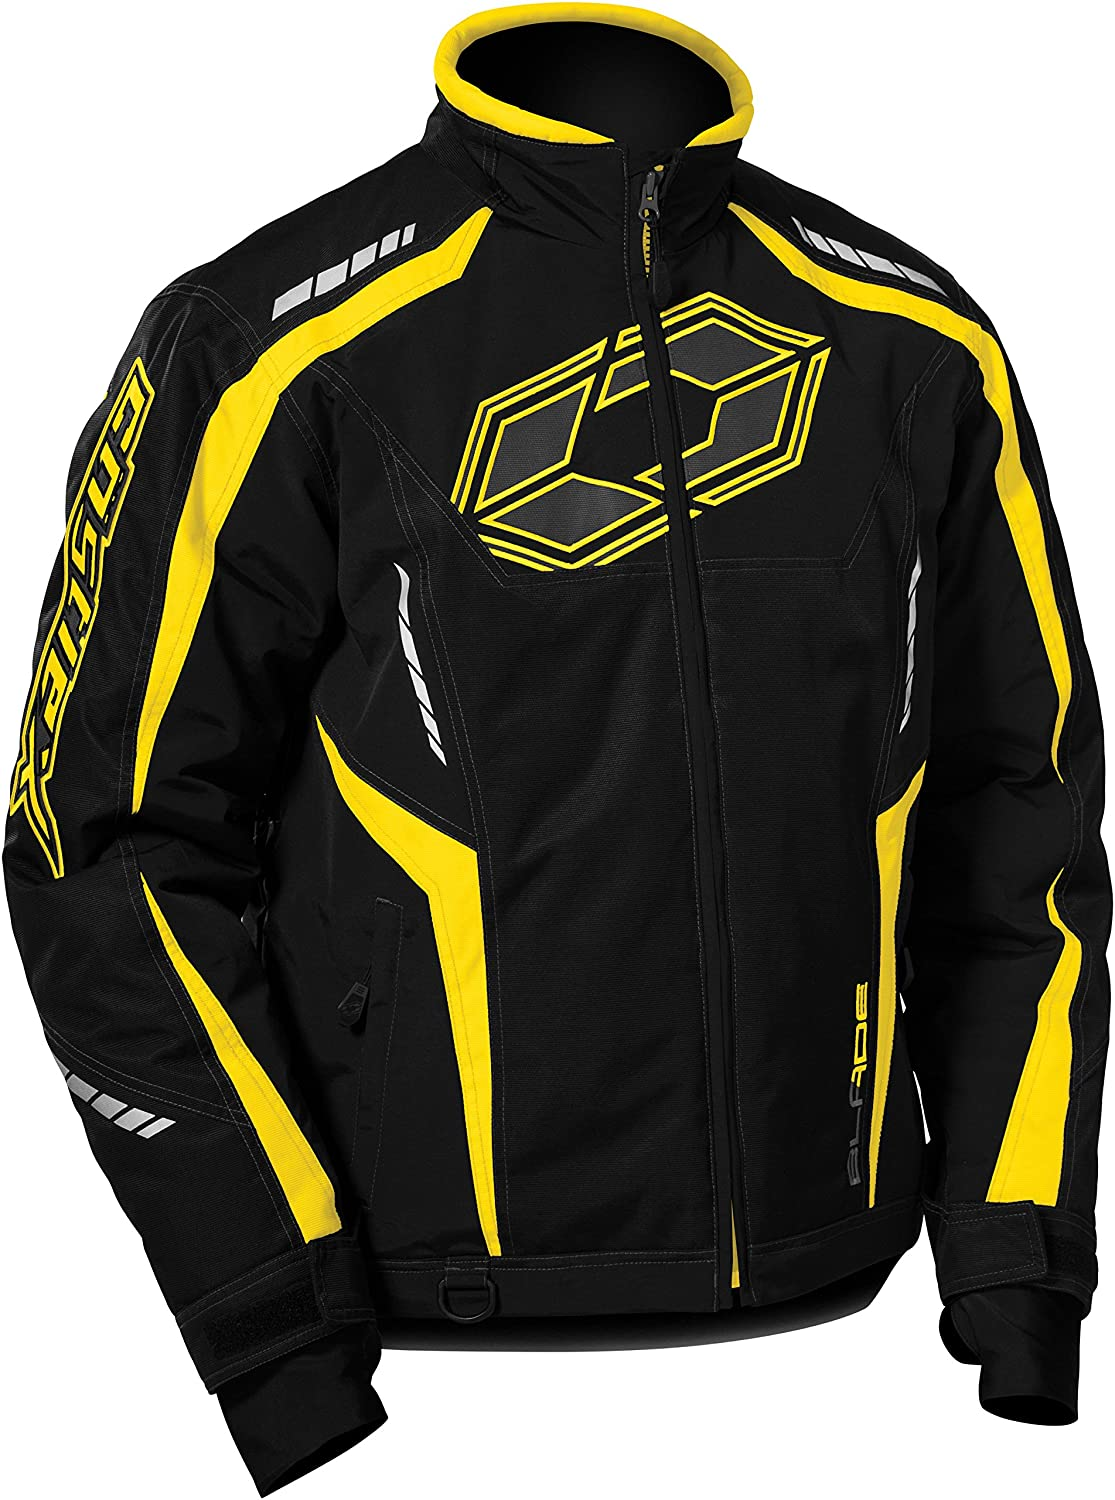 Castle X Blade G3 Mens Snowmobile Jacket - Yellow (3XL)